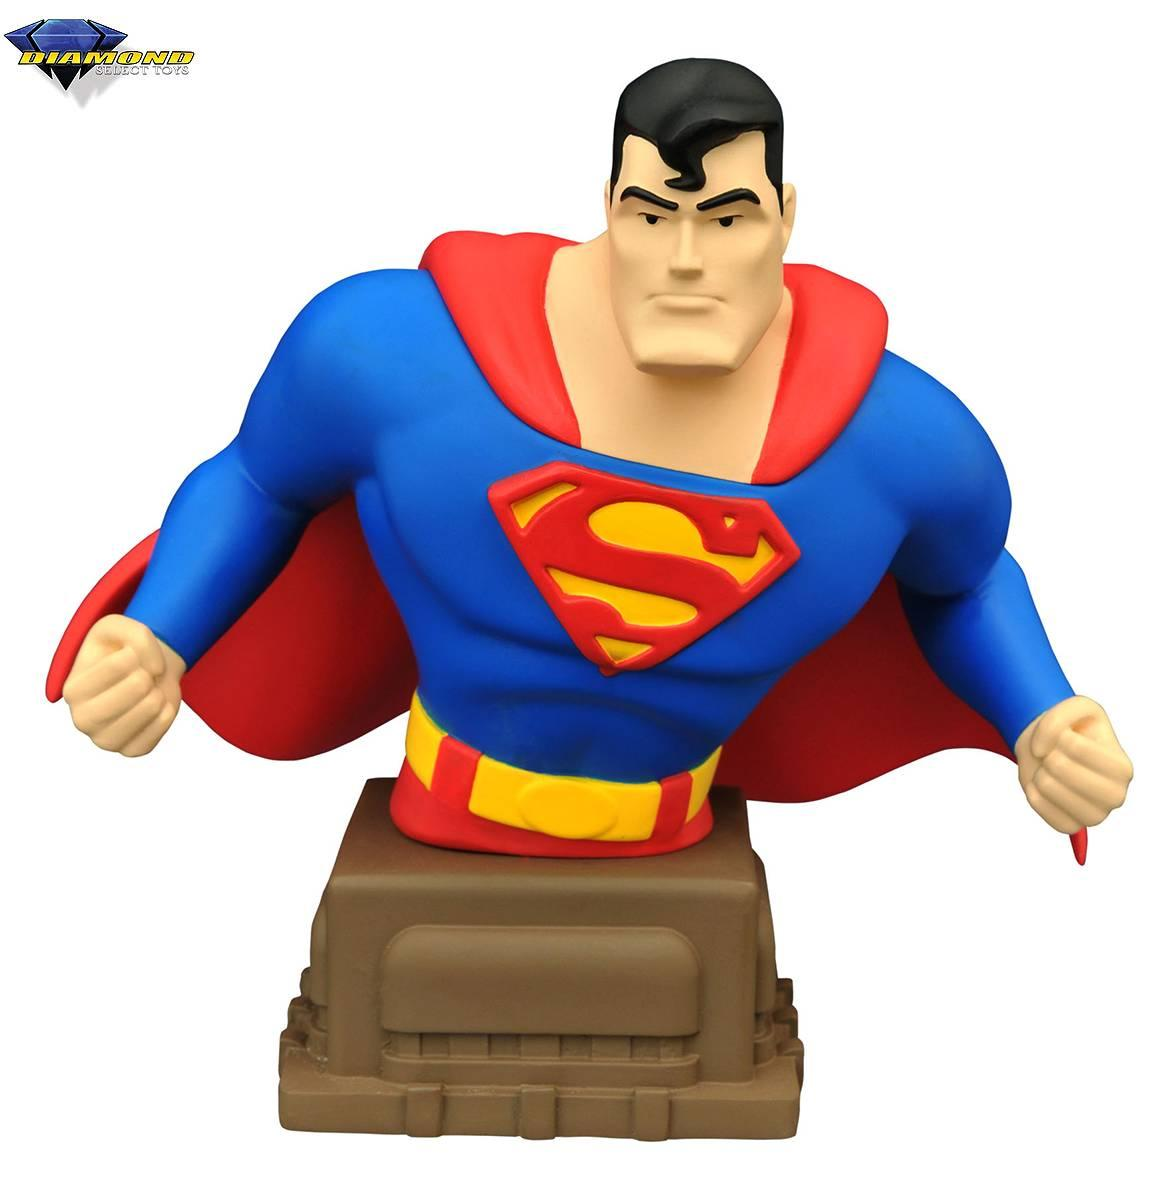 Diamond DC Comics Superman Animated Bust